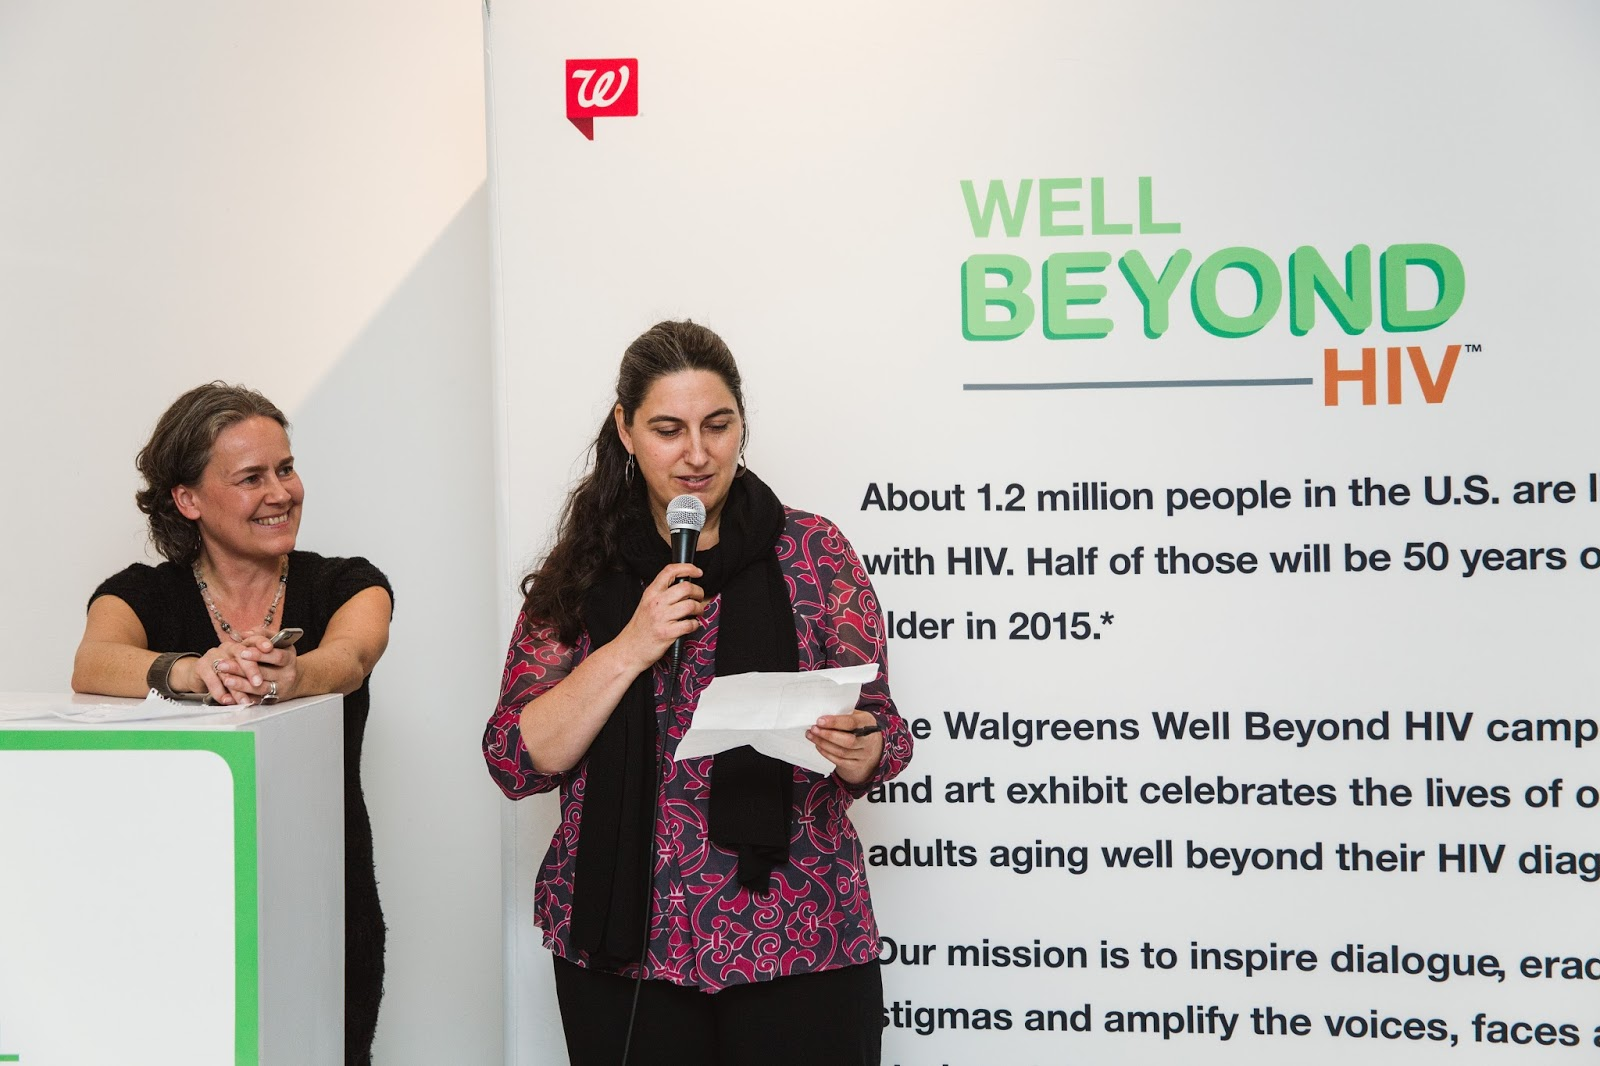 Katja Heinemann & Naomi Schlegoff Well Beyond HIV event